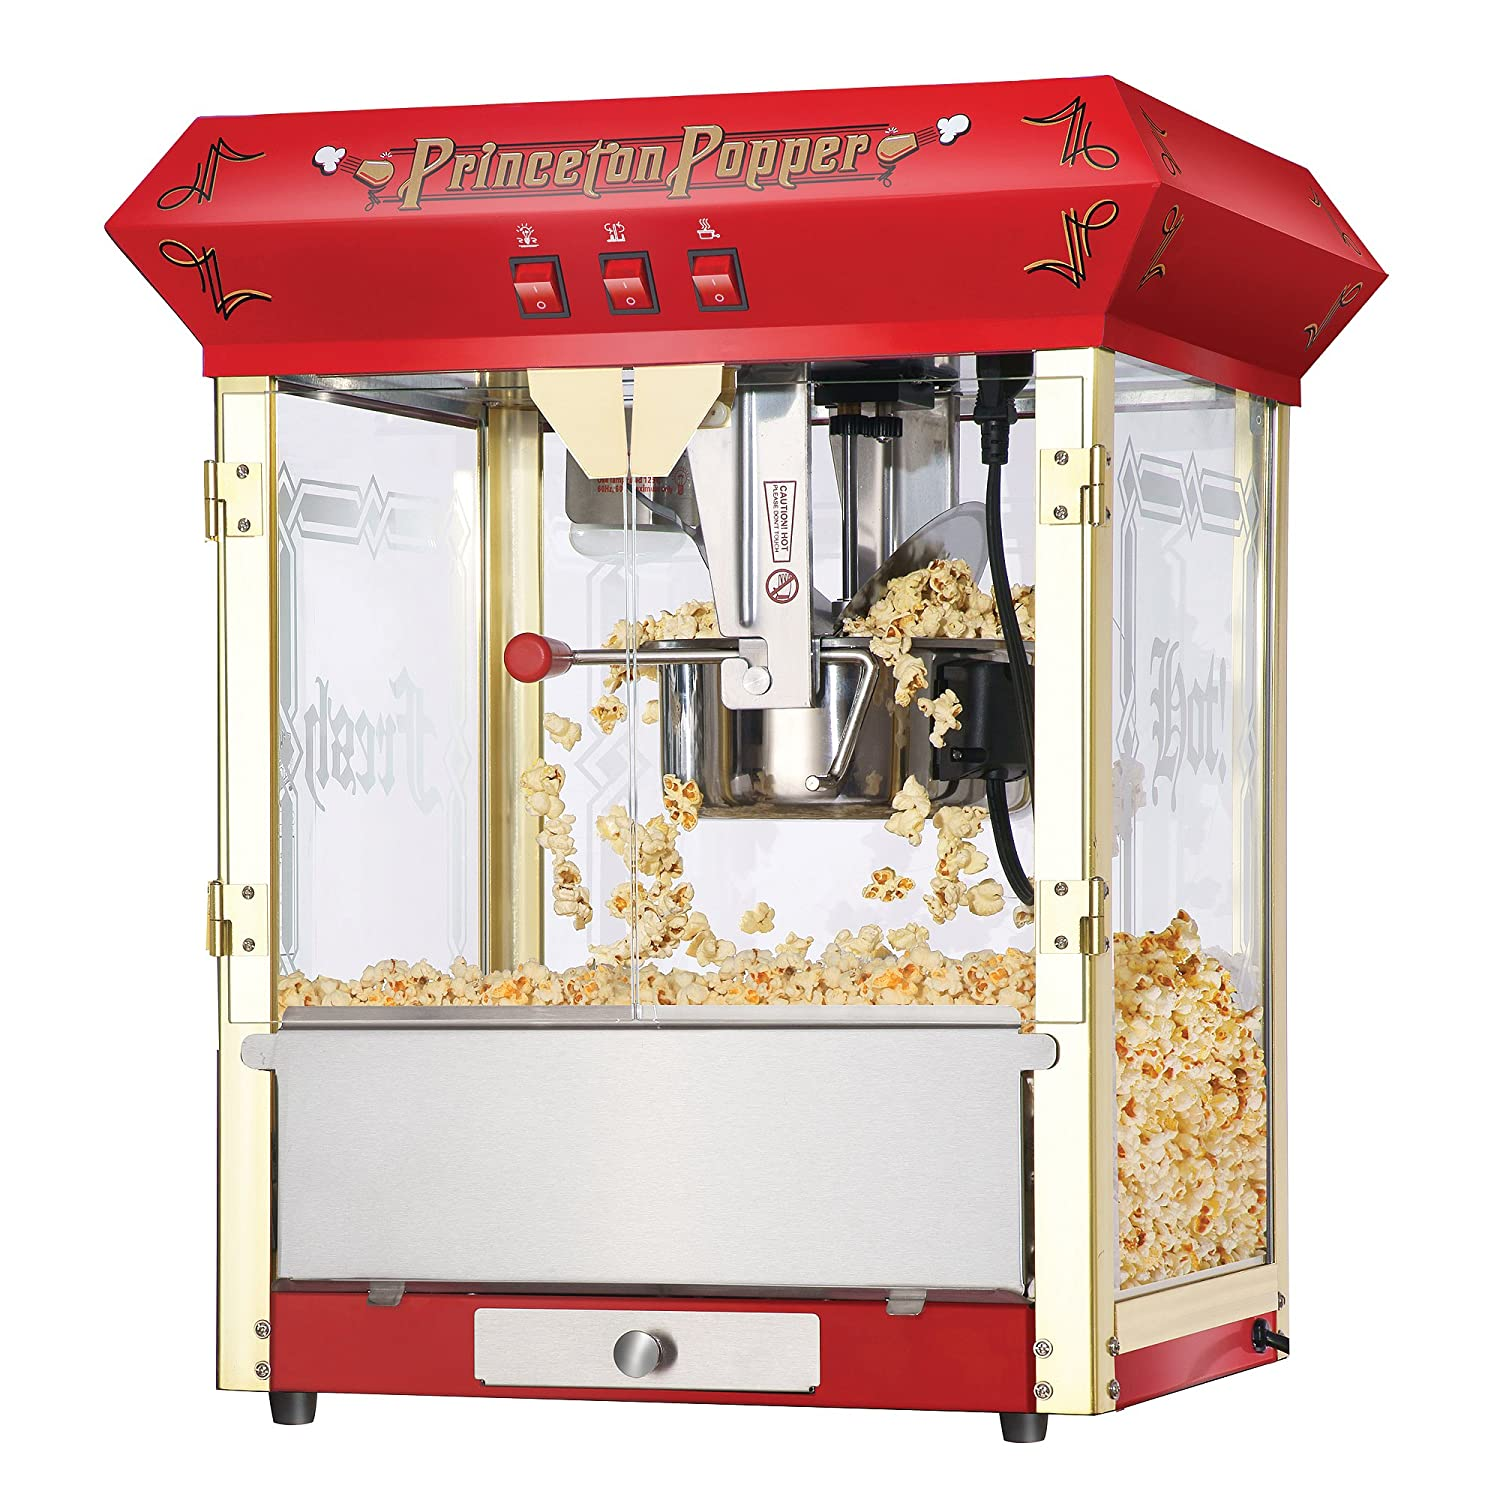 Awesome Great Northern Popcorn Red Princeton 8 oz Ounce Bar Style Antique Popcorn Machine